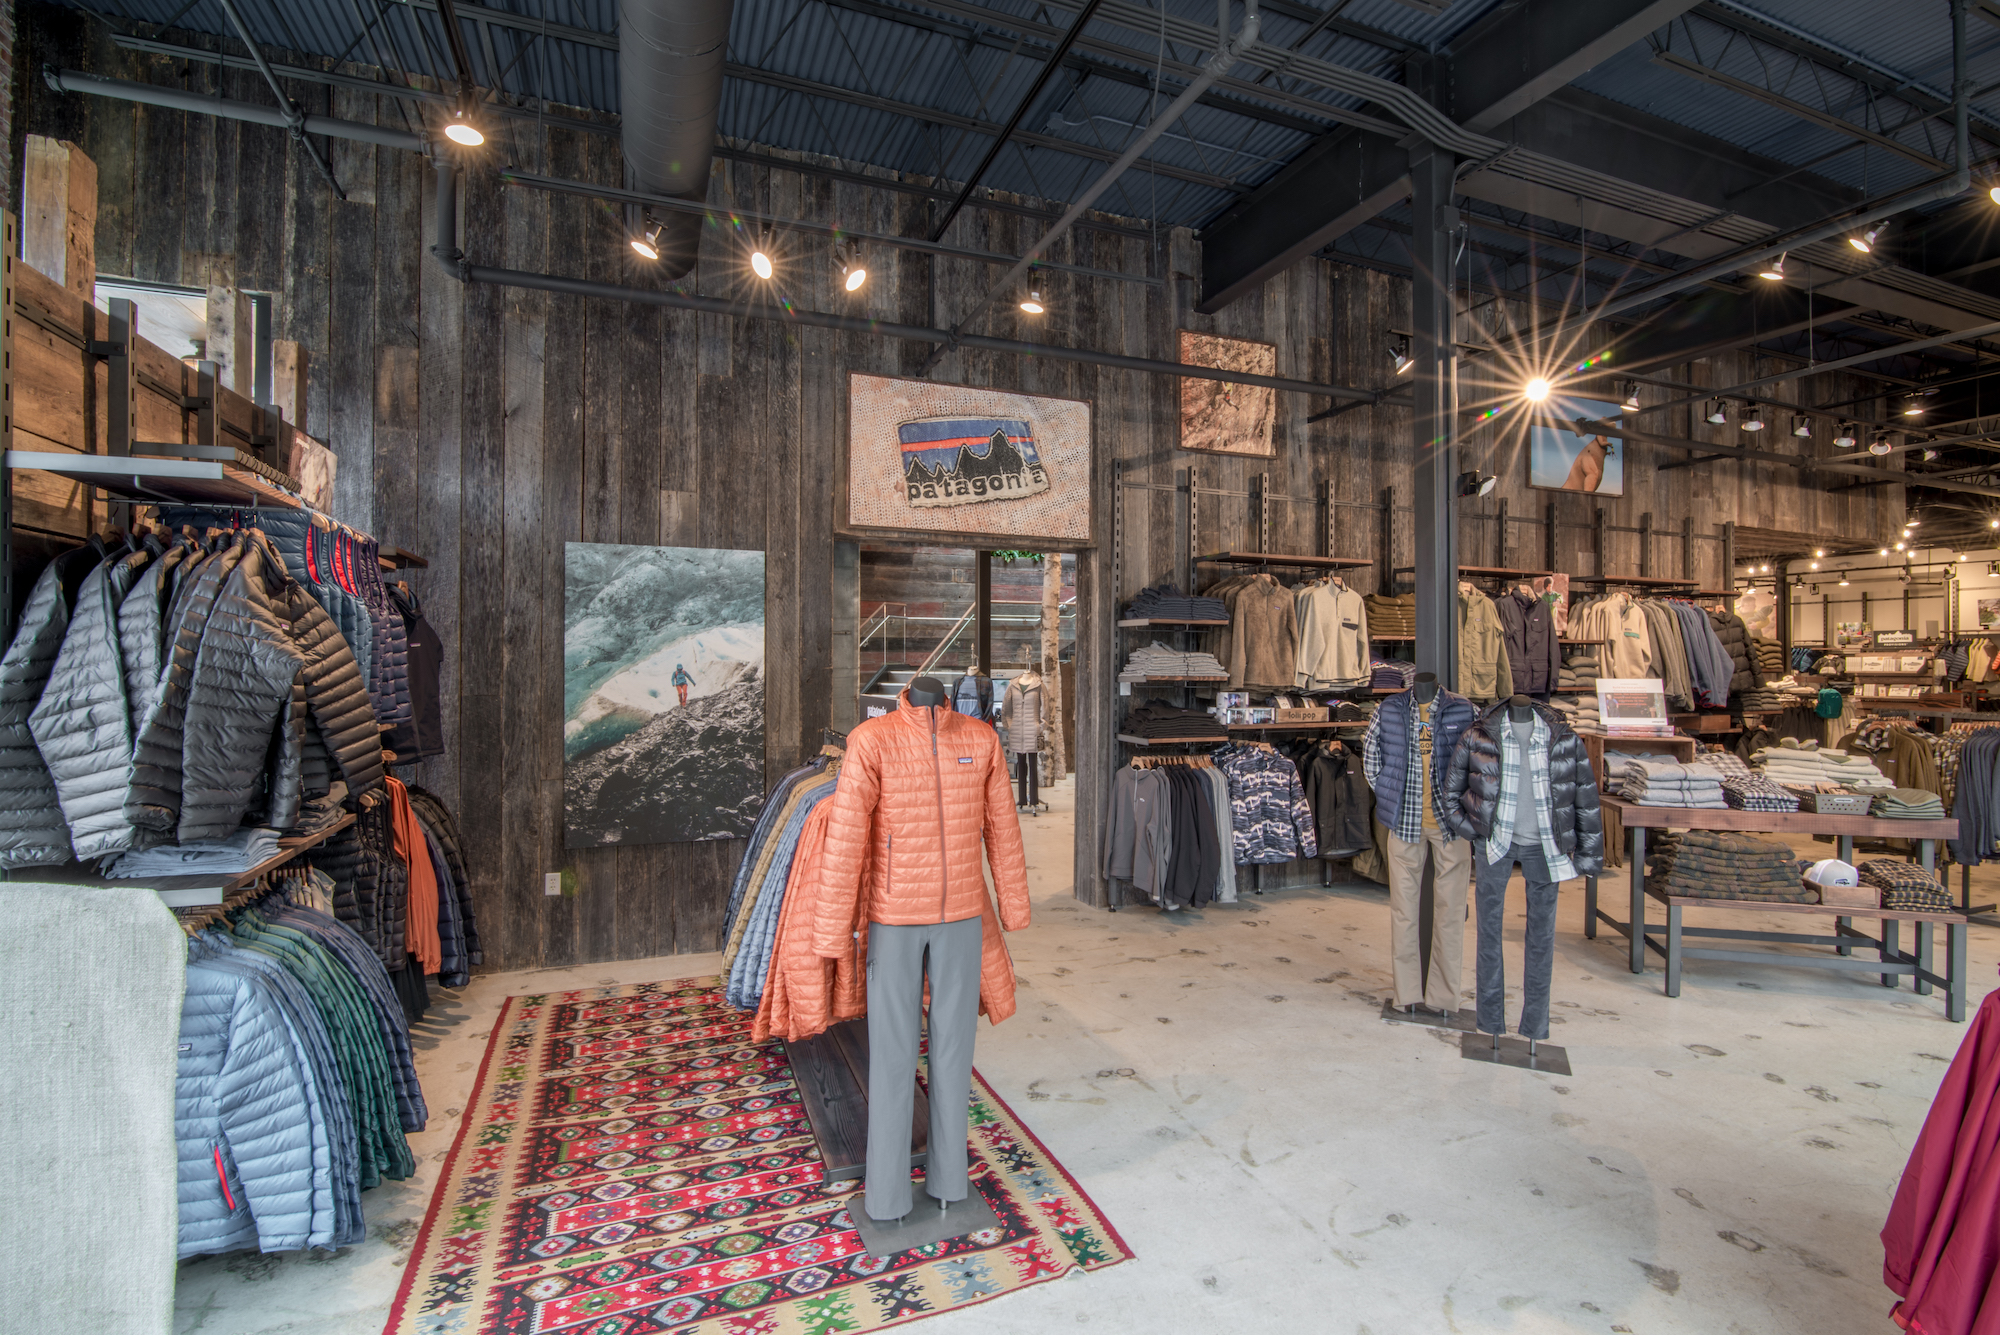 Outerwear retail store Denali in Providence, Rhode Island, featuring vintage barn board sourced by Rousseau Reclaimed Lumber & Flooring